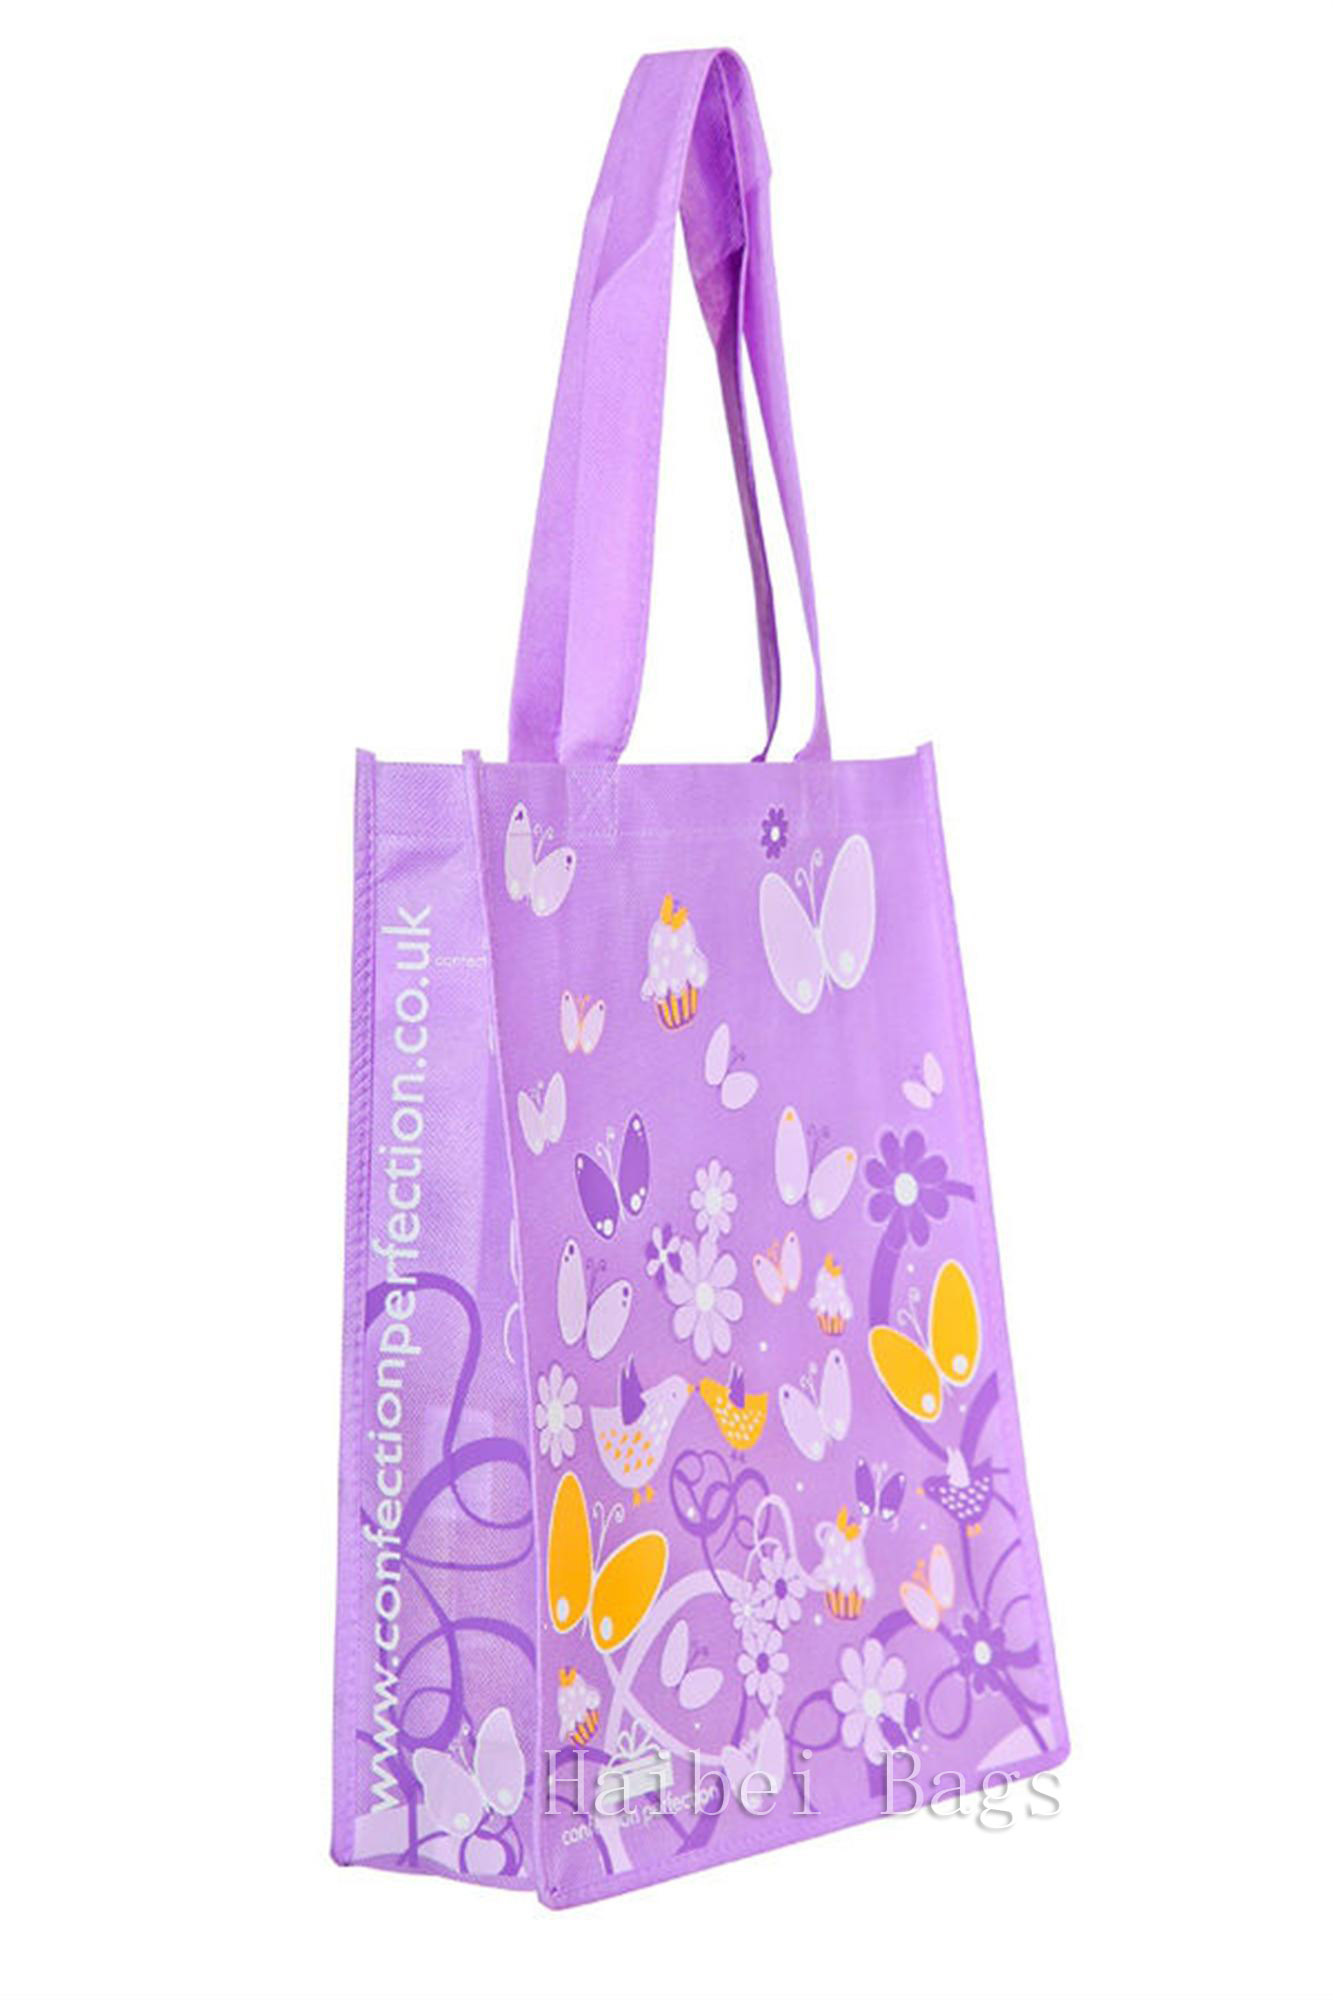 A4 Promotional Non-Woven Tote Bag